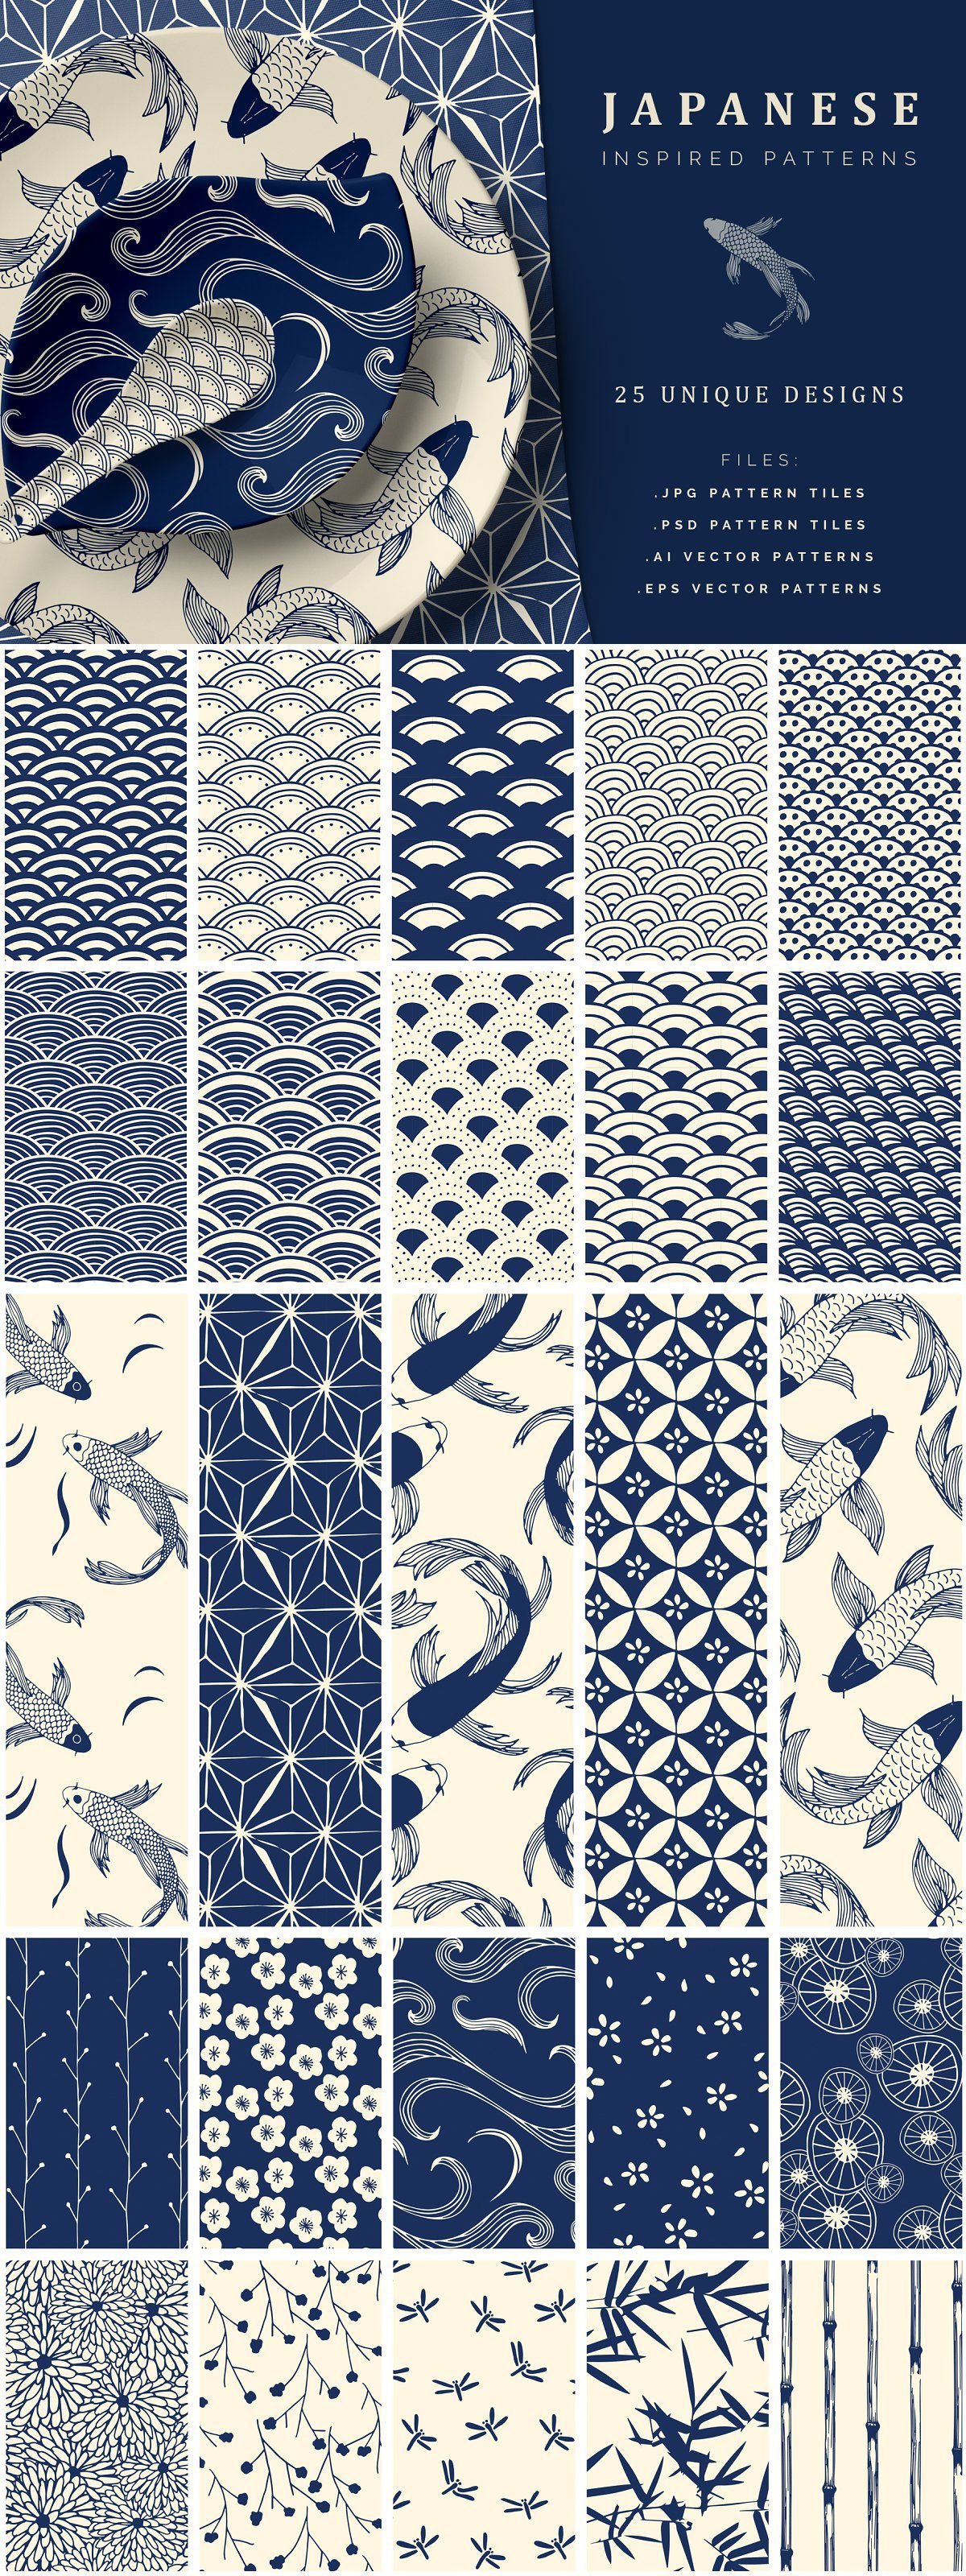 Hand Drawn Japanese Patterns